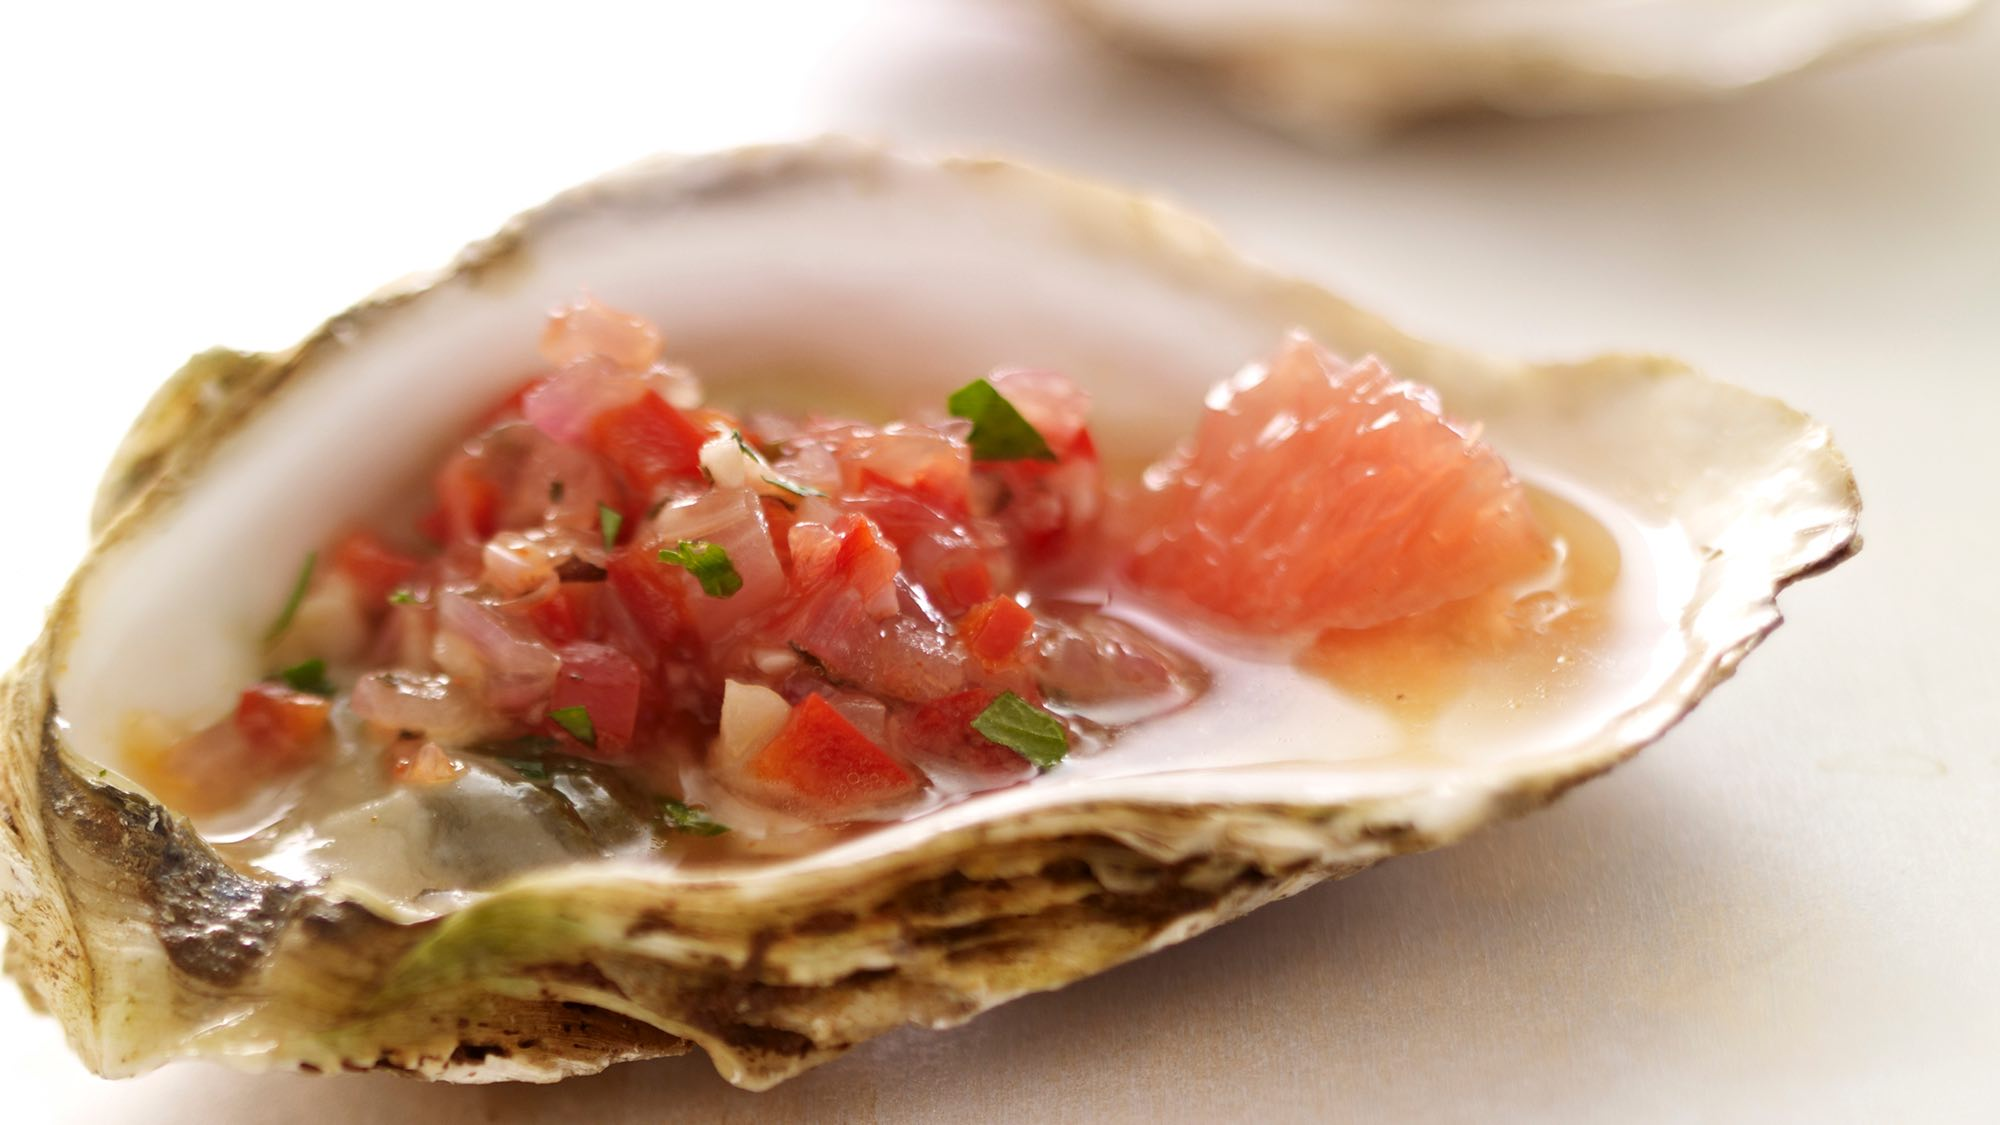 McCormick Grilled Oysters with Grapefruit and Red Pepper Relish